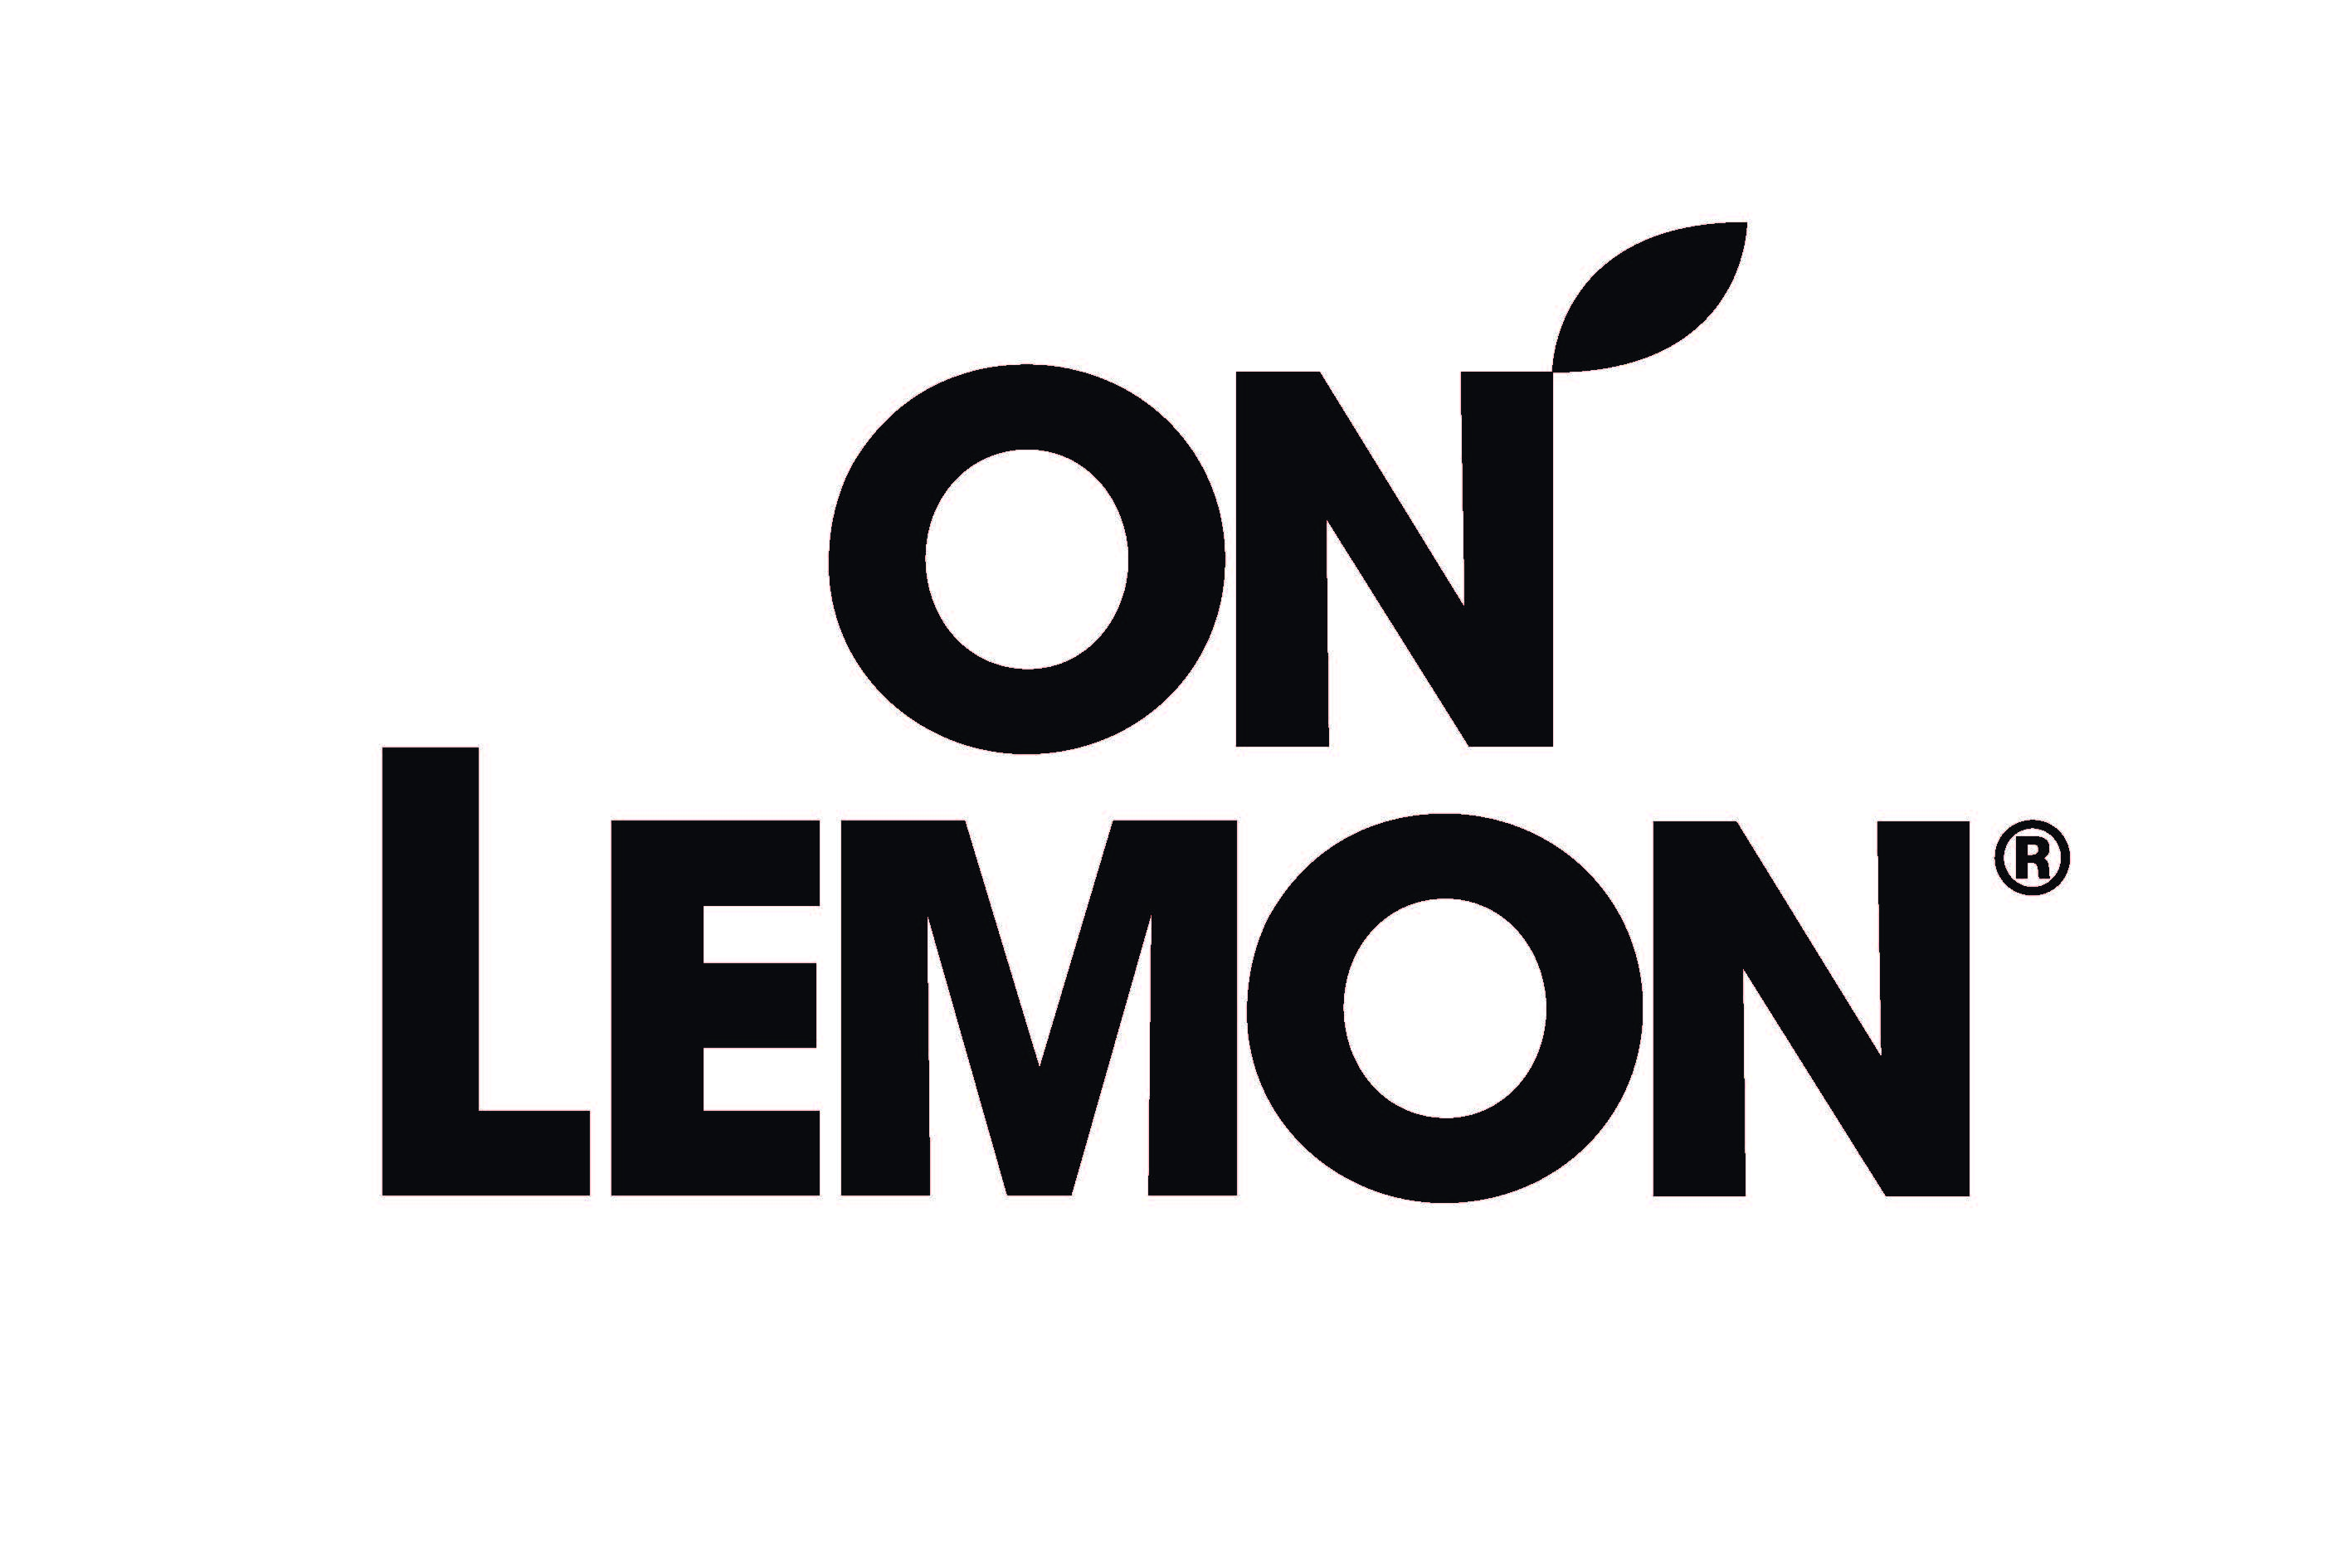 John Lemon logo